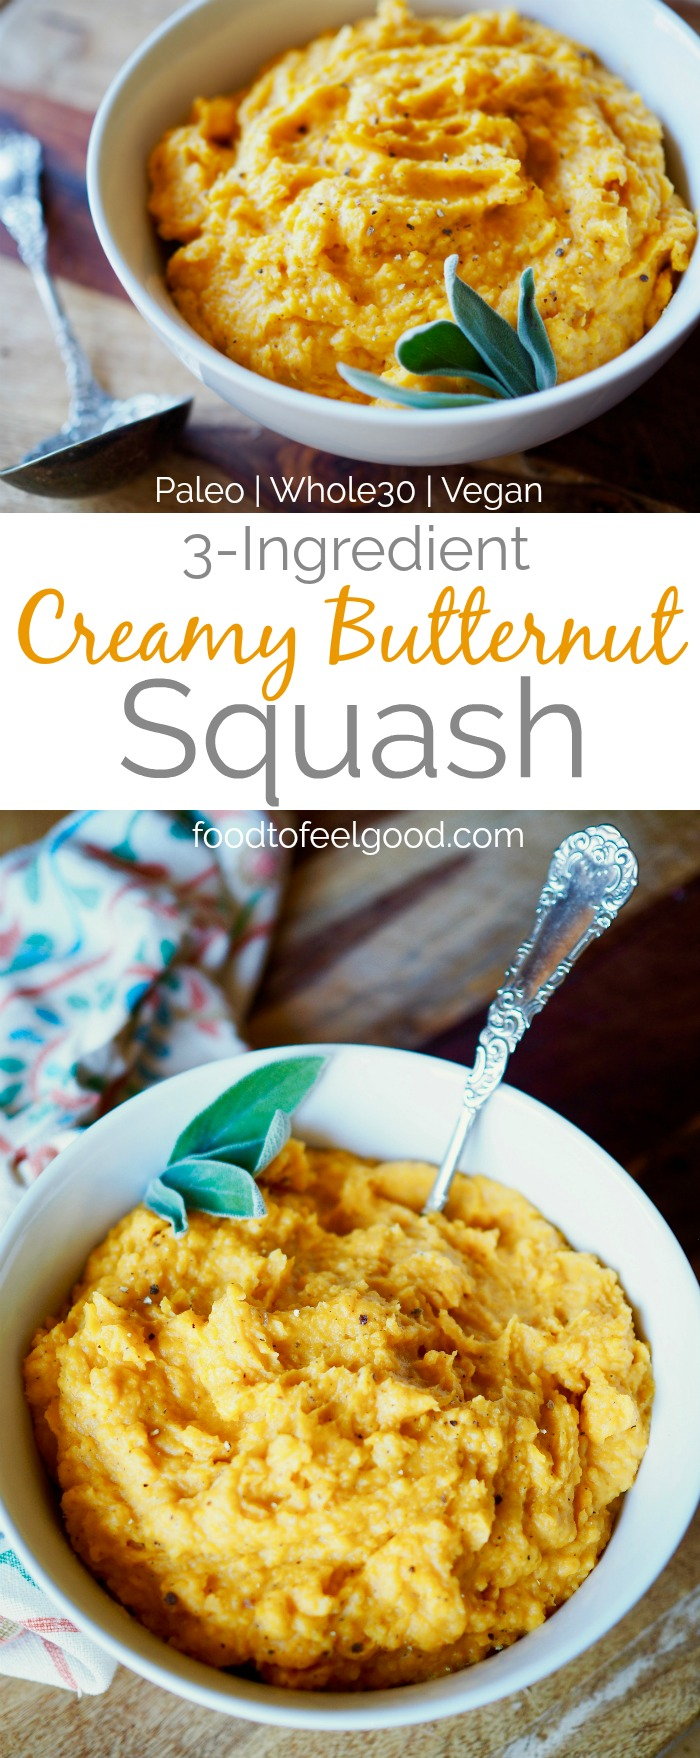 3-Ingredient Creamy Butternut Squash | Paleo | Vegan | Whole30 | A simple healthy recipe for chilly days or a holiday feast, great any time of the day! #healthyrecipes #Whole30 #paleo #glutenfree #vegan